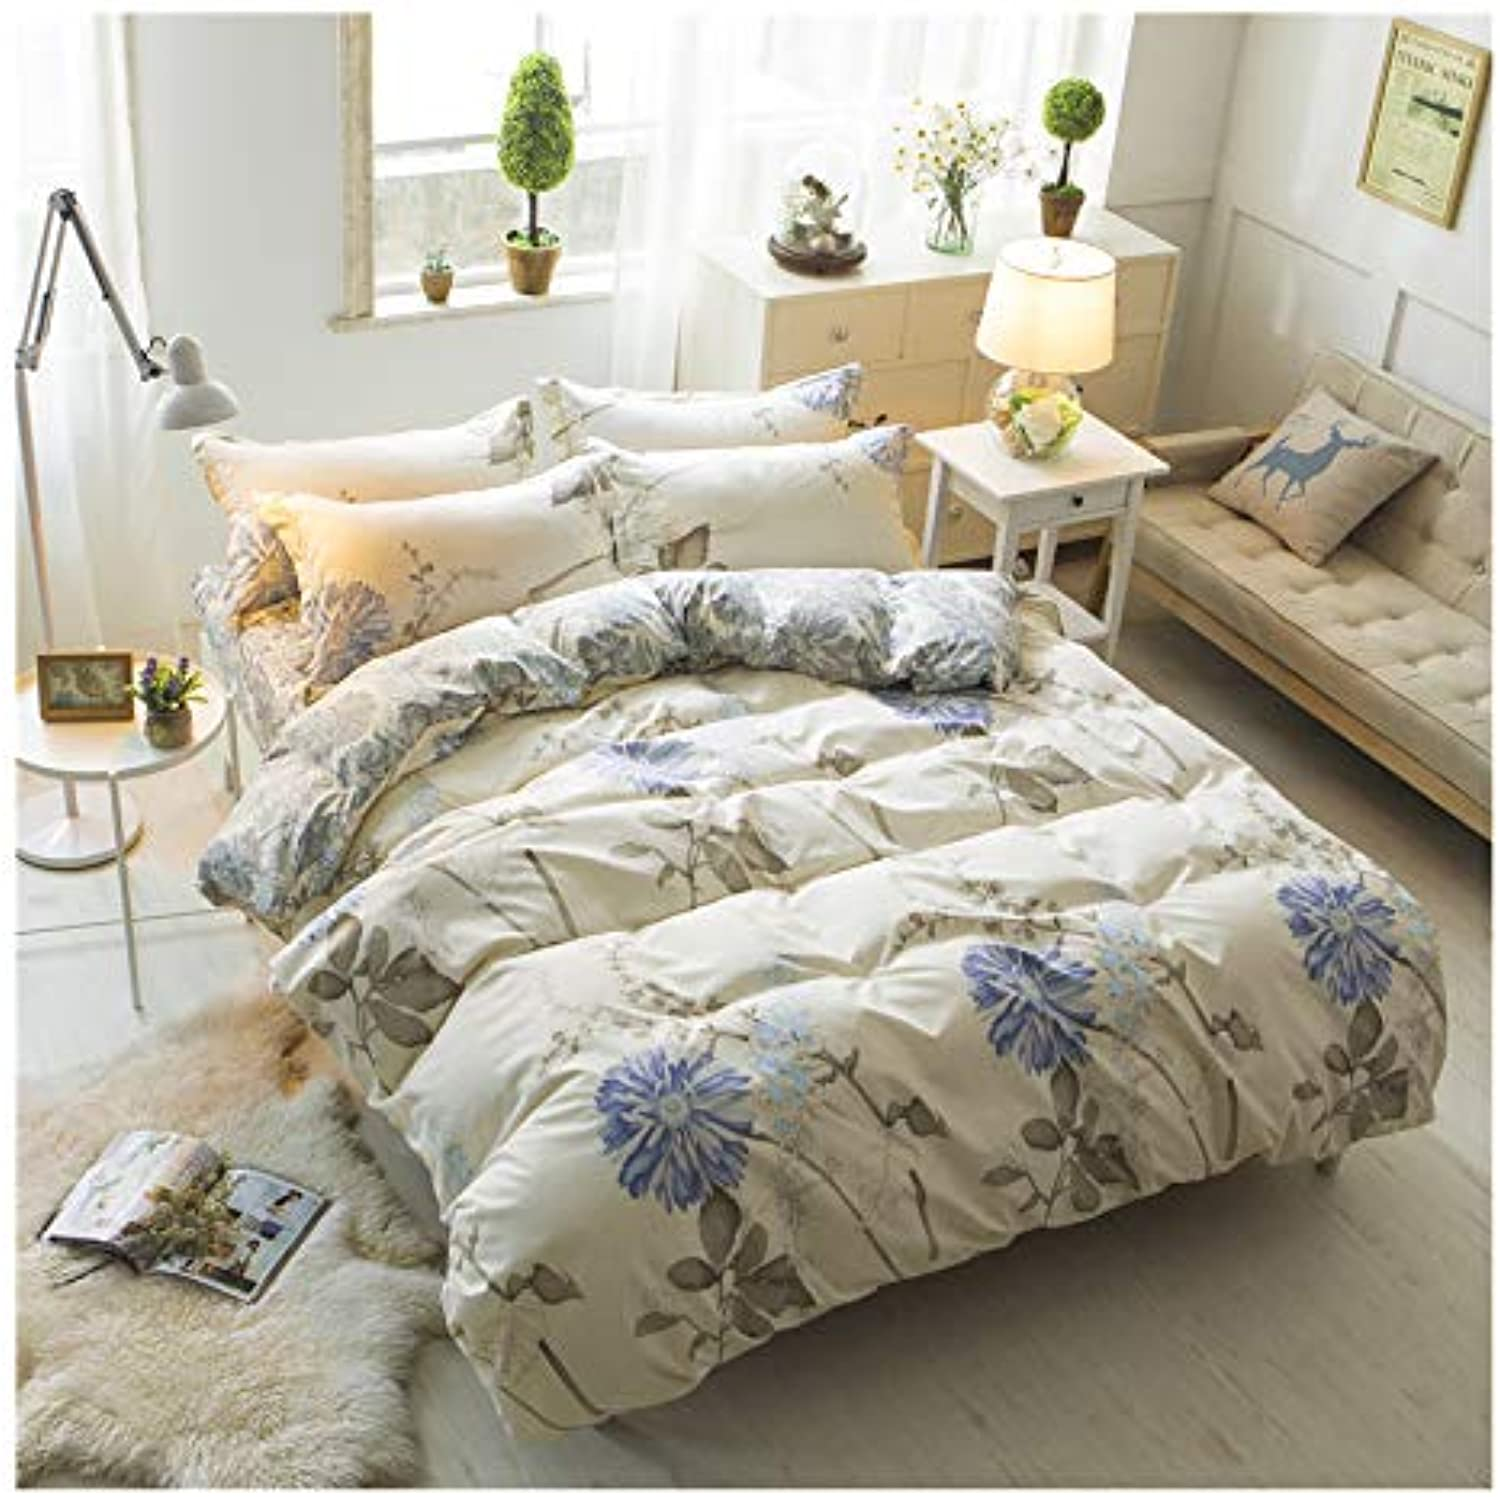 Daisy Printed Bedding Set Floral Duvet Cover Set Twin 3 Pieces Stripes Comforter Cover Flower Soft with 2 Pillow Shams for Women Adult,NO Comforter